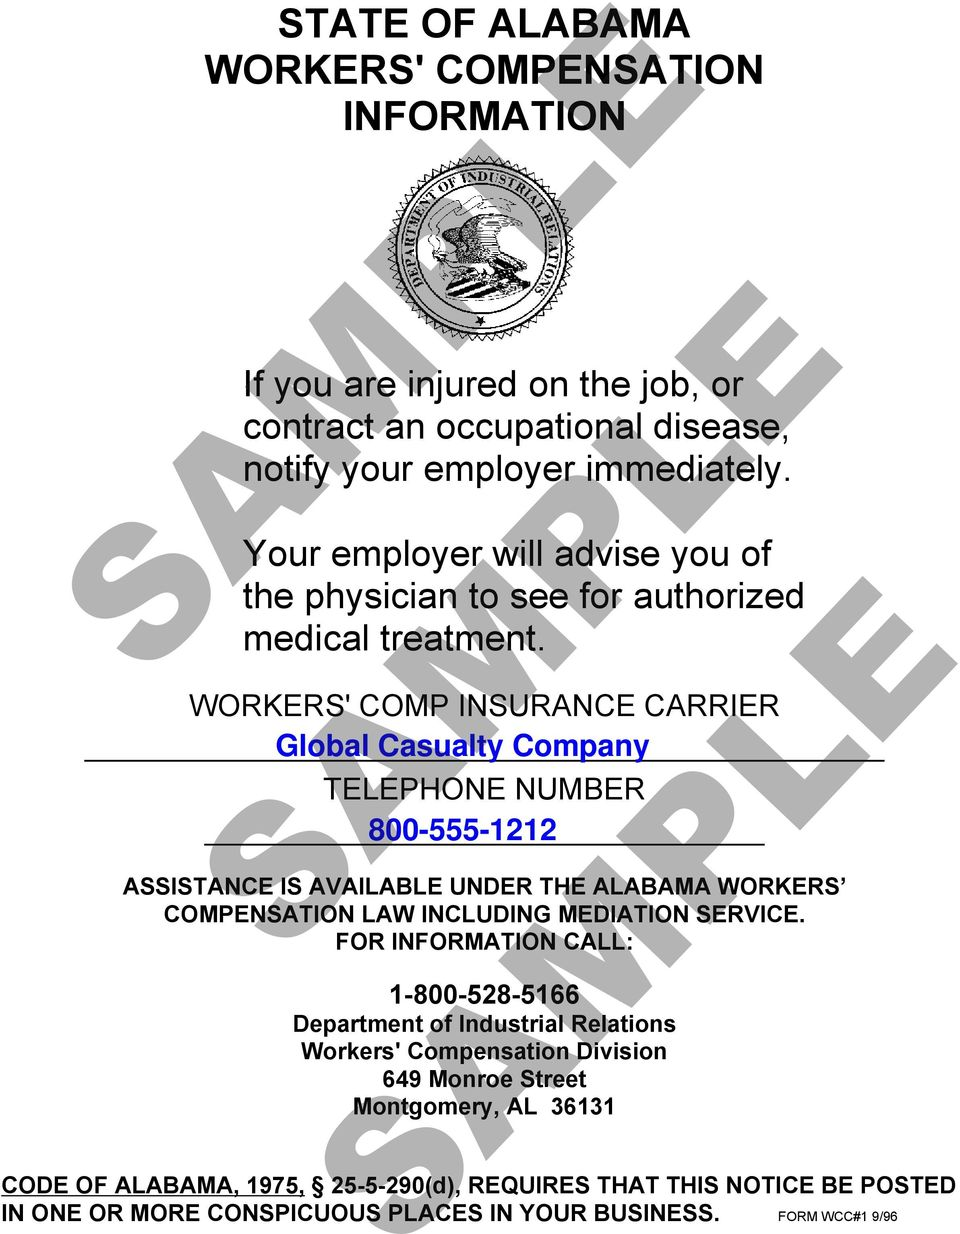 WORKERS' COMP INSURANCE CARRIER Global Casualty Company TELEPHONE NUMBER 800-555-1212 ASSISTANCE IS AVAILABLE UNDER THE ALABAMA WORKERS COMPENSATION LAW INCLUDING MEDIATION